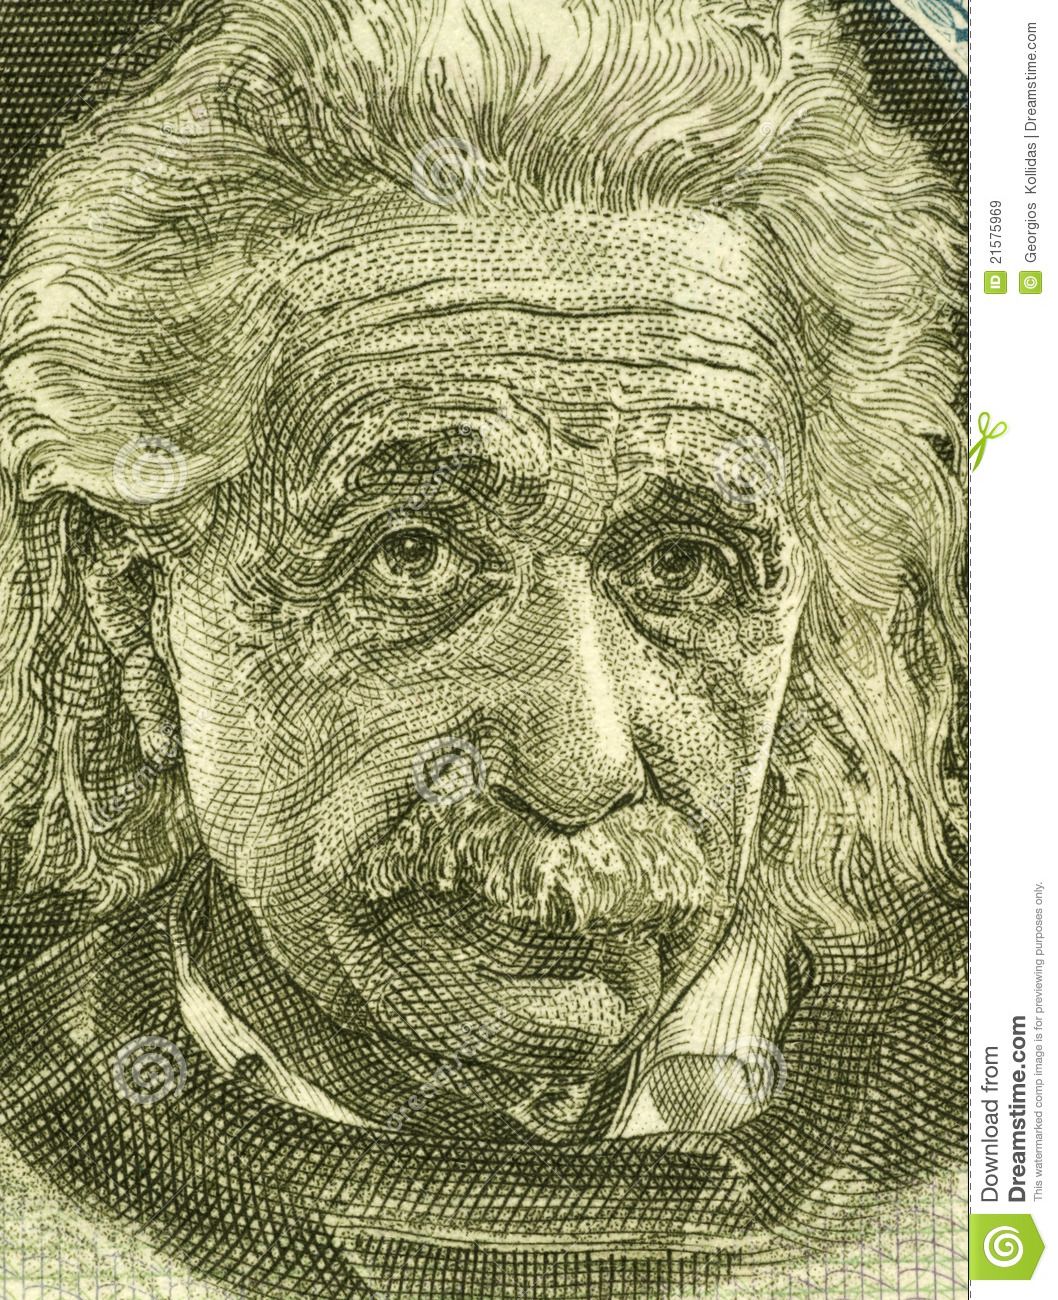 an analysis of the meekness ingenuity and intelligence of albert einstein By casey hayden and mary king (1965) this paper about women in social   filling most jobs, while intensifying american industry's need for creative  intelligence  ---the bunny, or woman reduced to a meek and docile animal toy   by shulamith firestone (1968) a radical interpretation of the feminist.